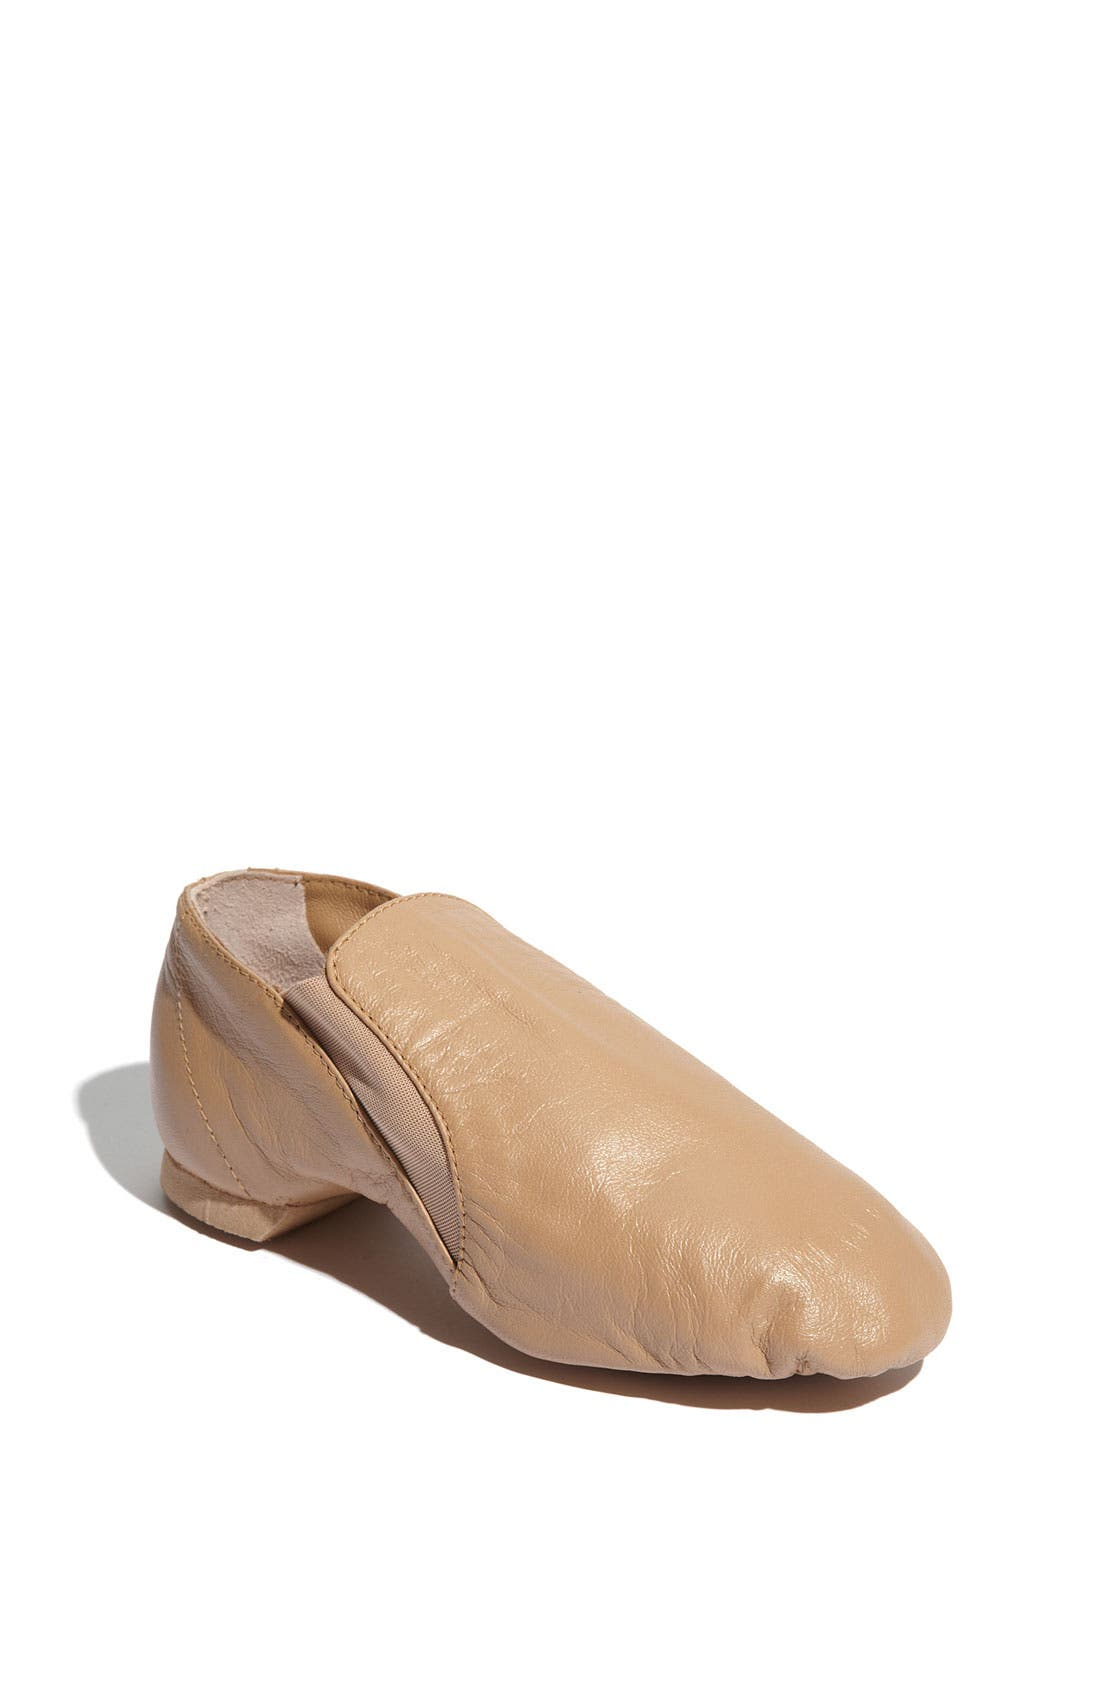 Main Image - Bloch 'Elasta Bootie' Jazz Shoe (Toddler, Little Kid & Big Kid)